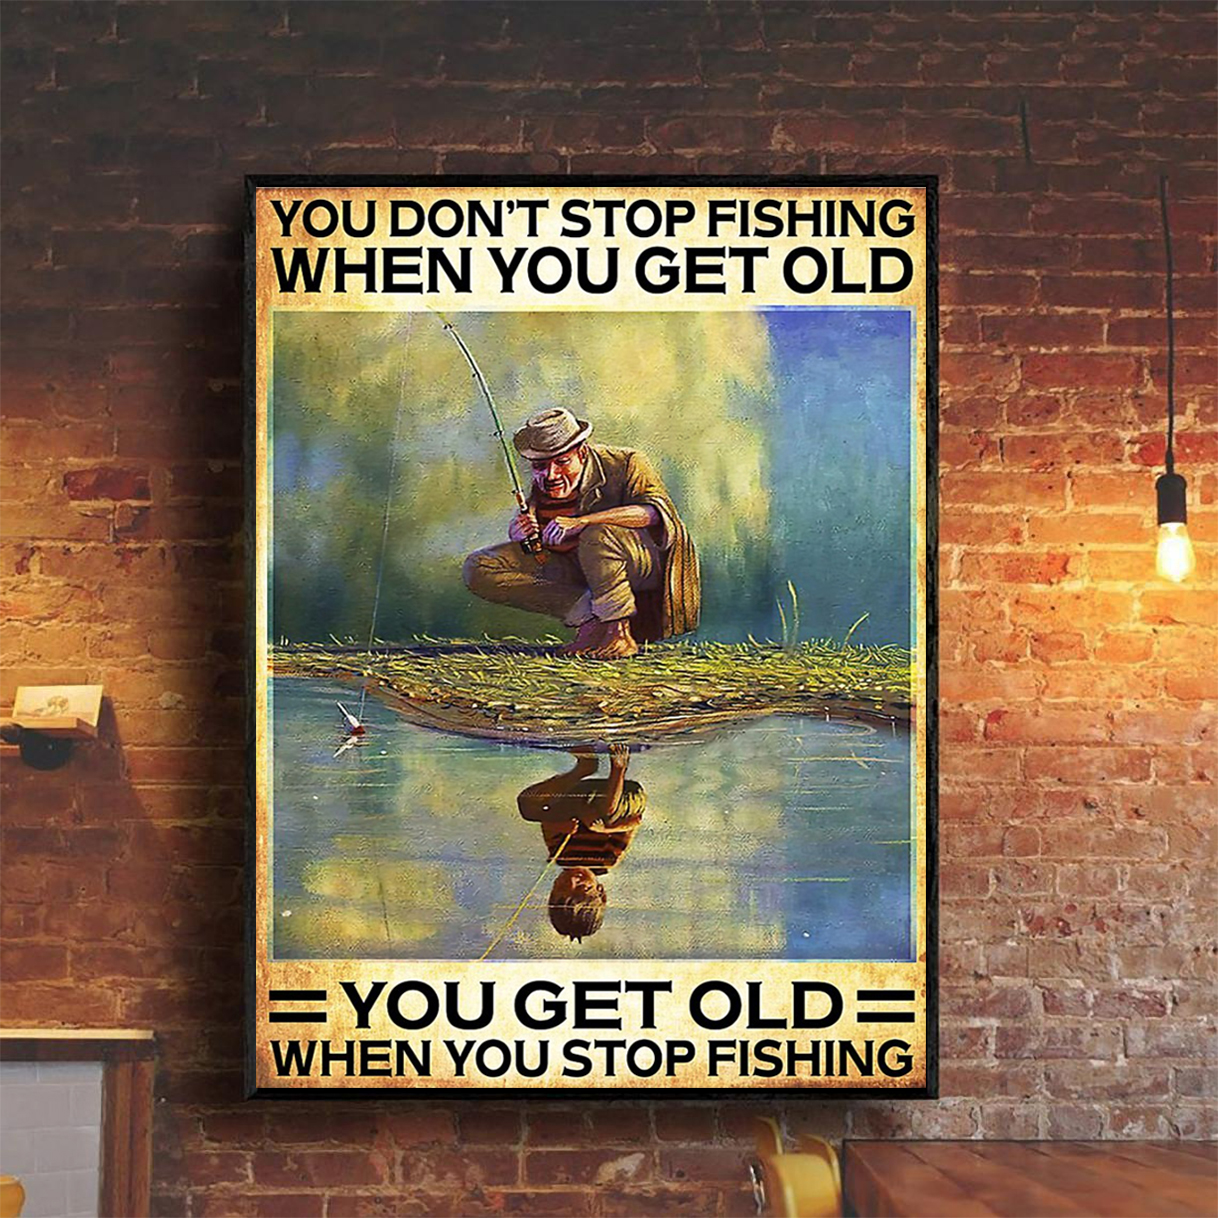 Poster you don't stop fishing when you get old you get old when you stop fishing A2